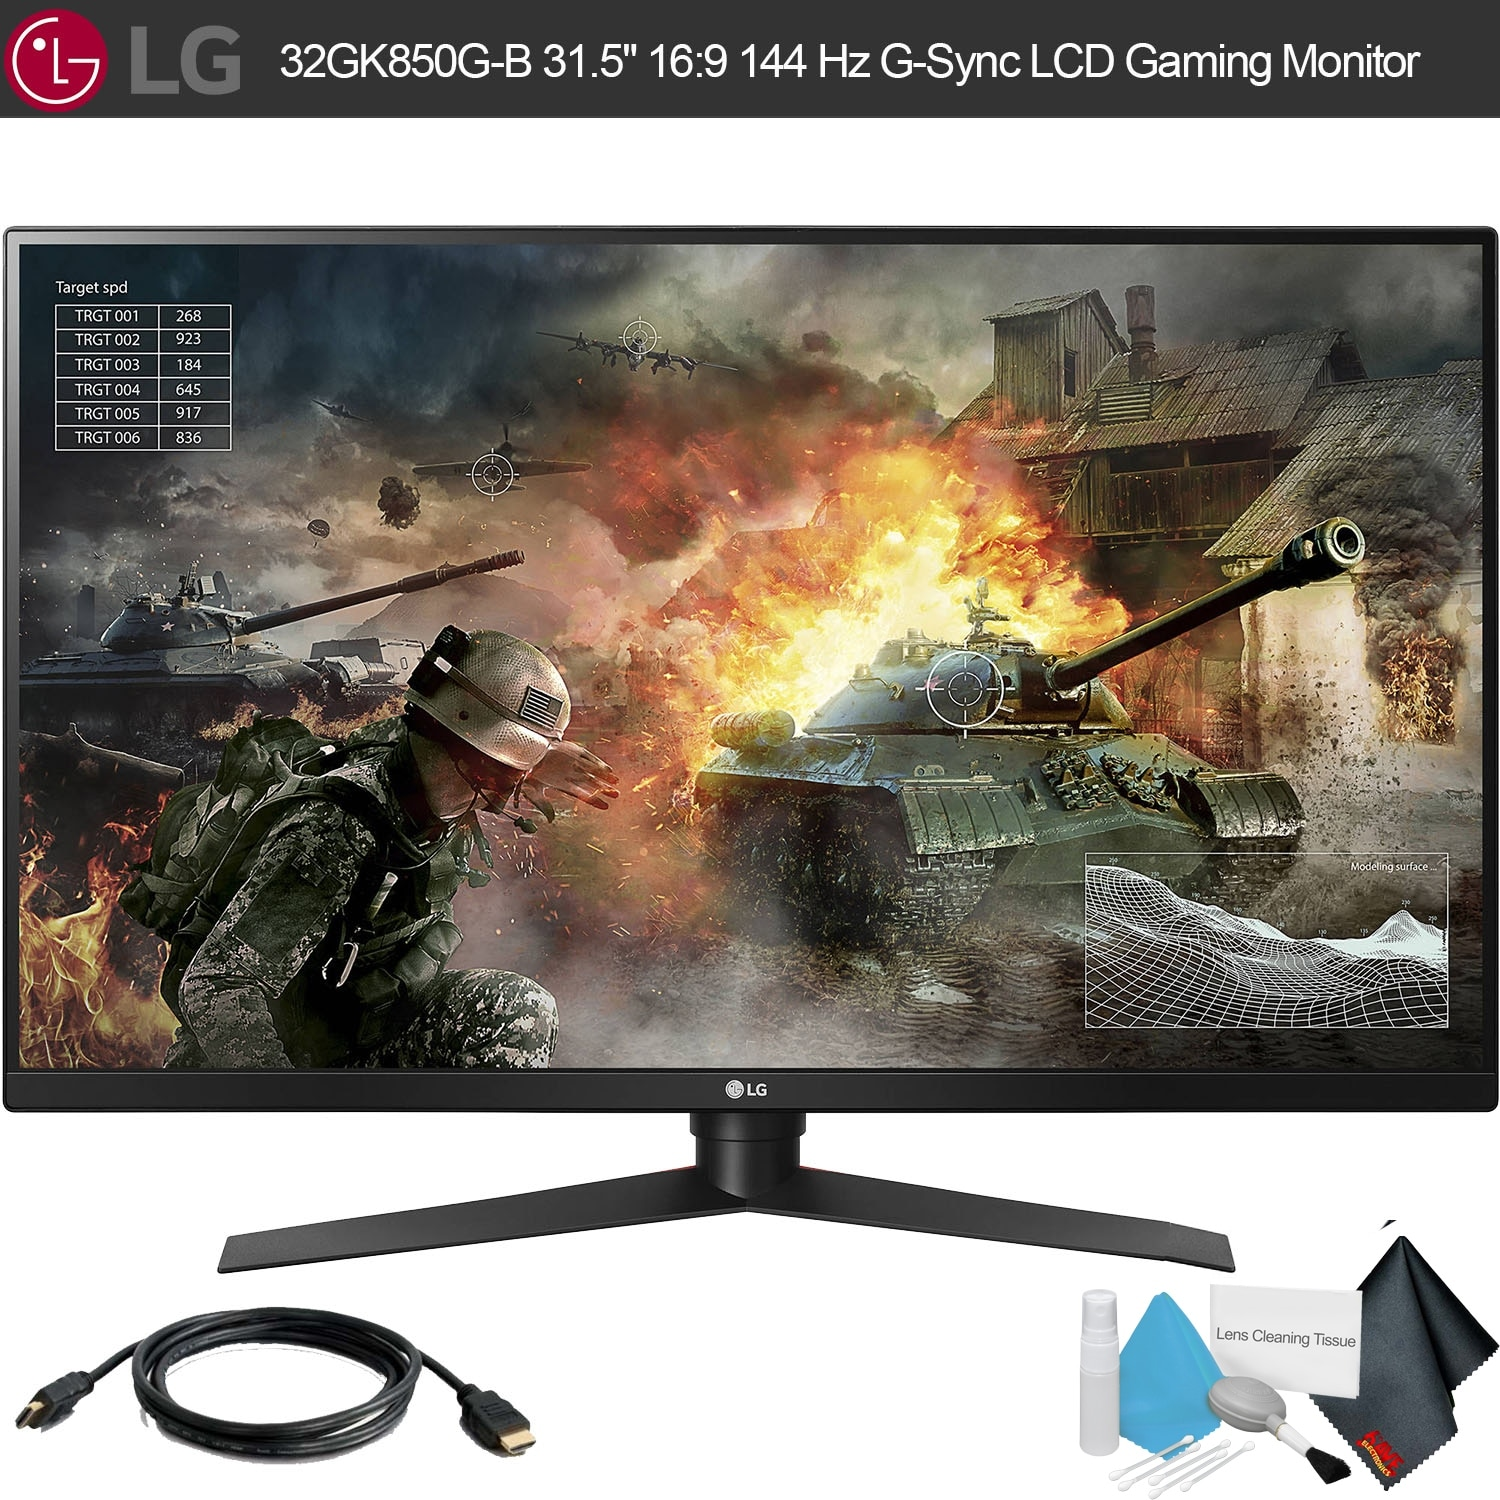 "LG 31.5"""" 16:9 144 Hz G-Sync LCD Gaming Monitor With Kit (1 Pack)"